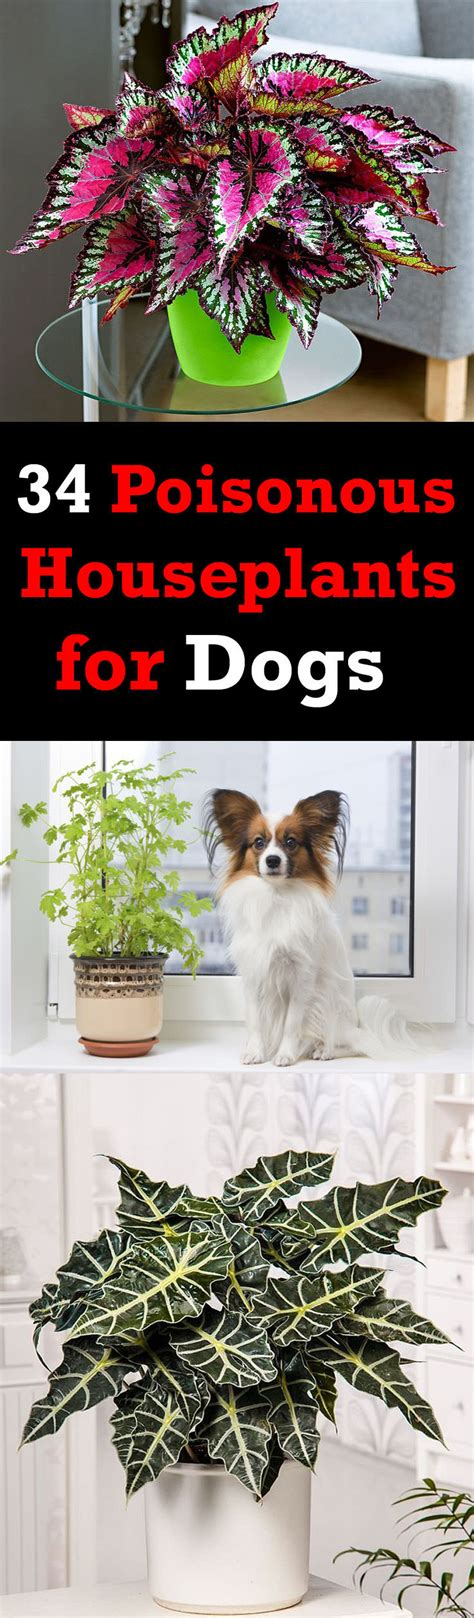 what plants are poisonous to dogs 34 poisonous houseplants for dogs plants toxic to dogs